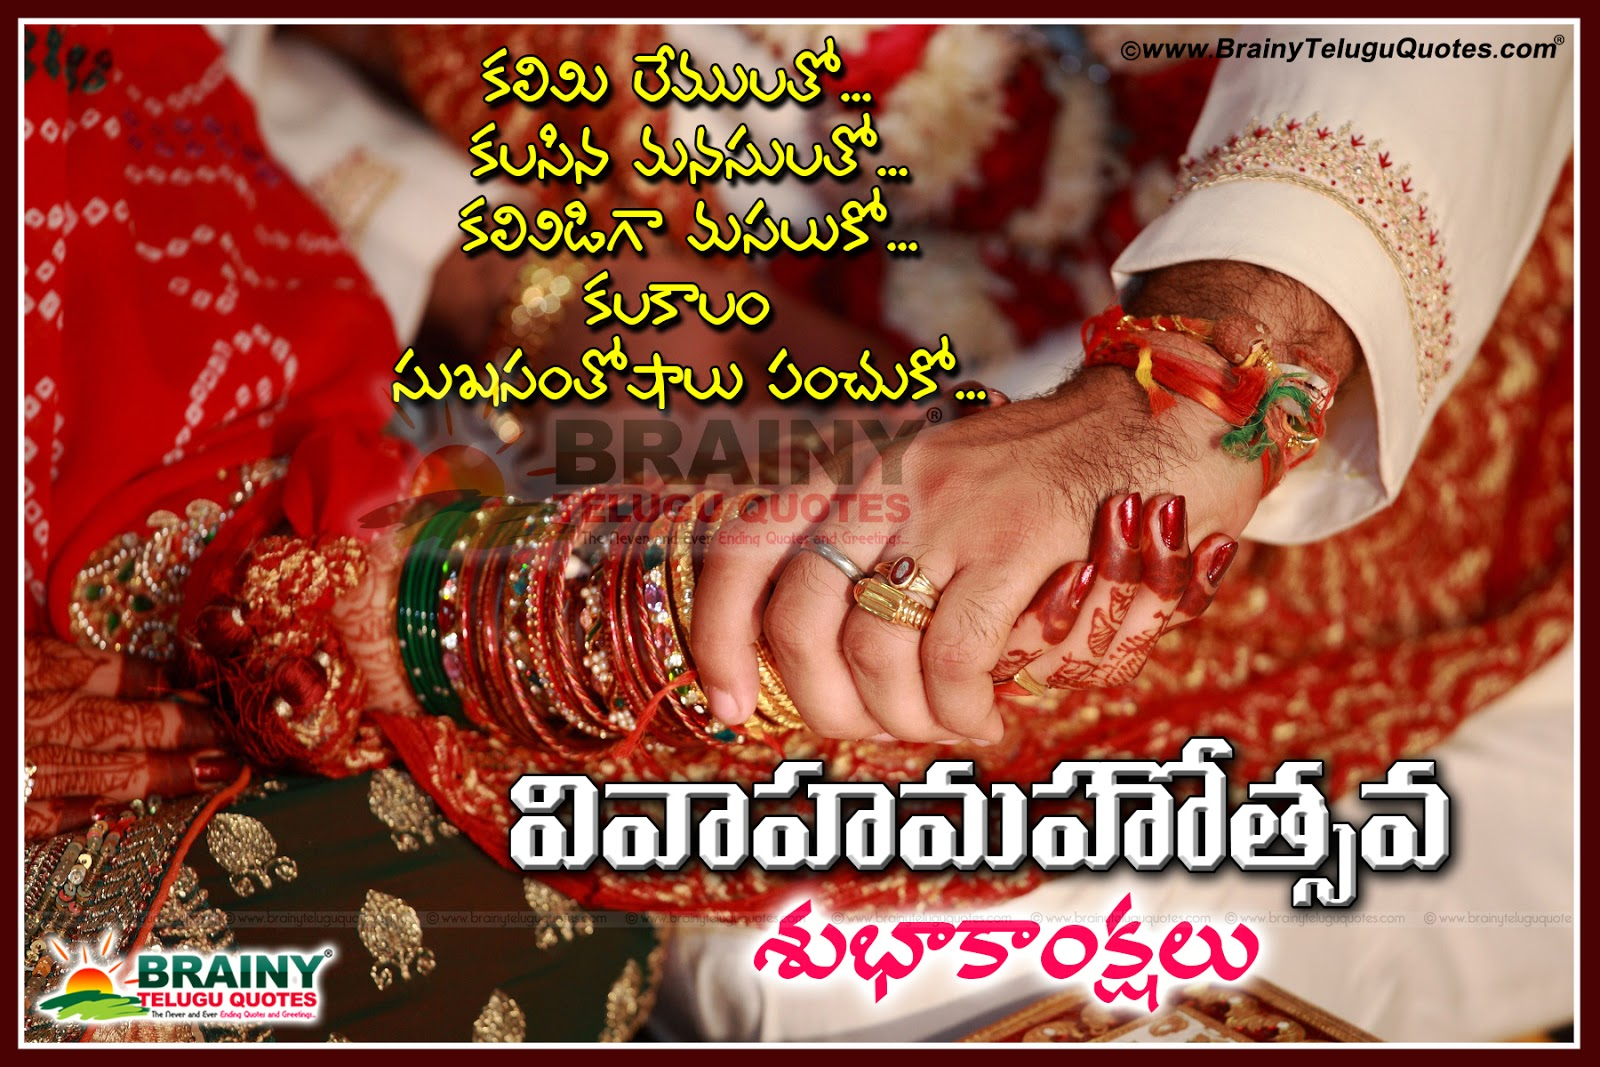 Here Is A Telugu Marriage Day Quoteessages For Bava Wedding Wishes Best Friend Famoily Members New